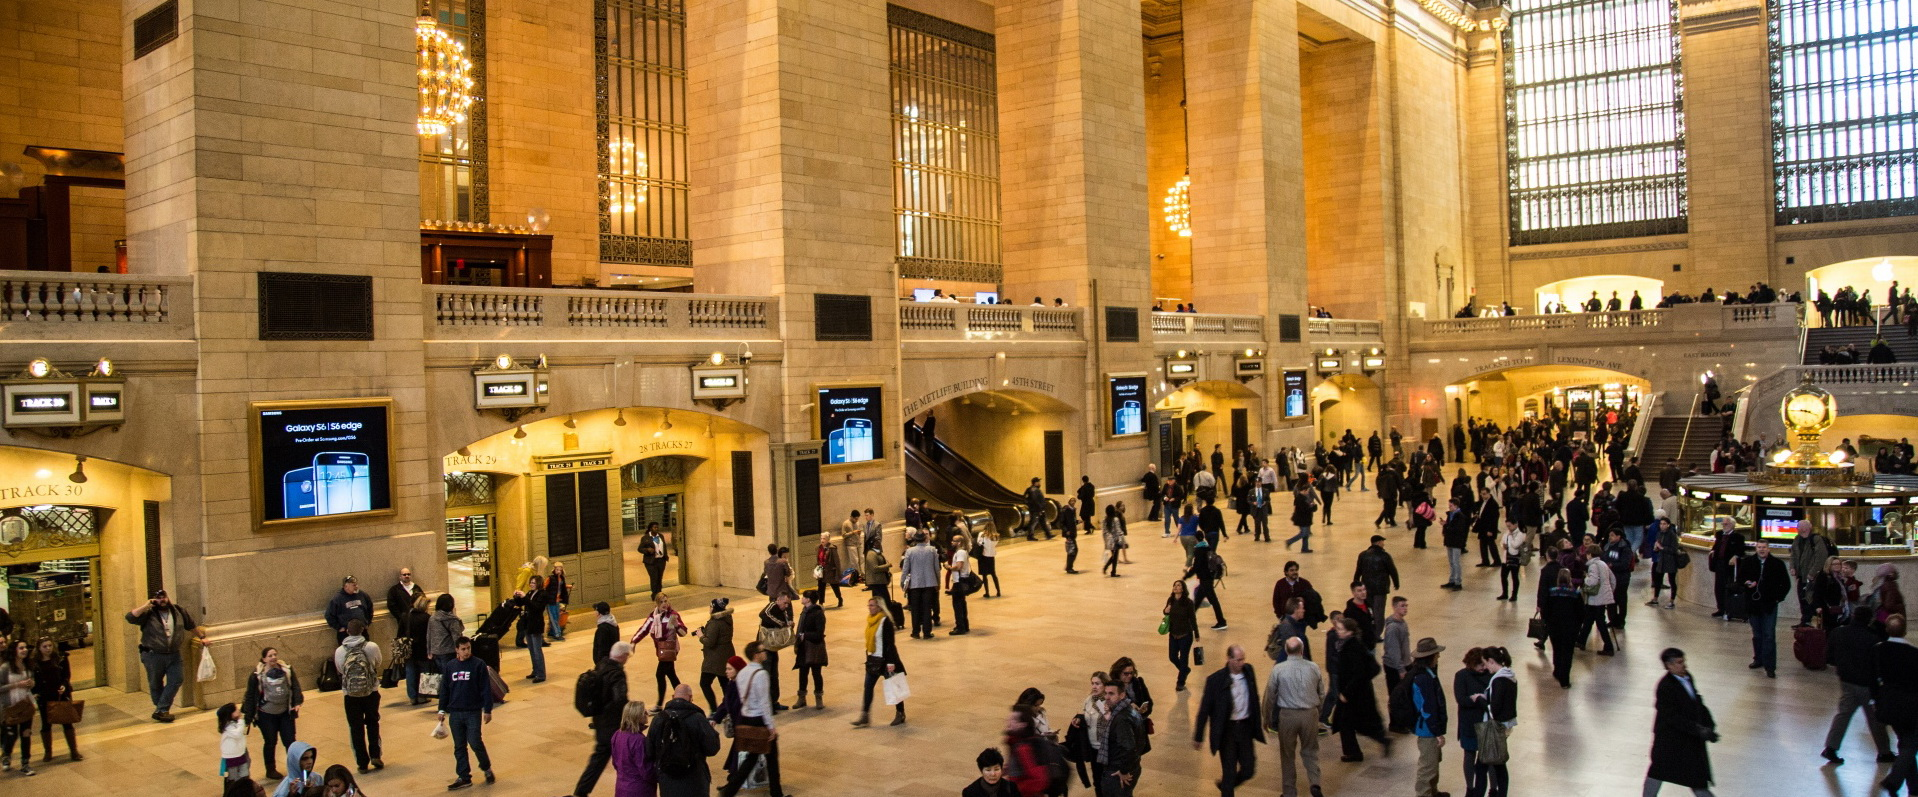 grand-central-station-in-new-york-14676504698CK